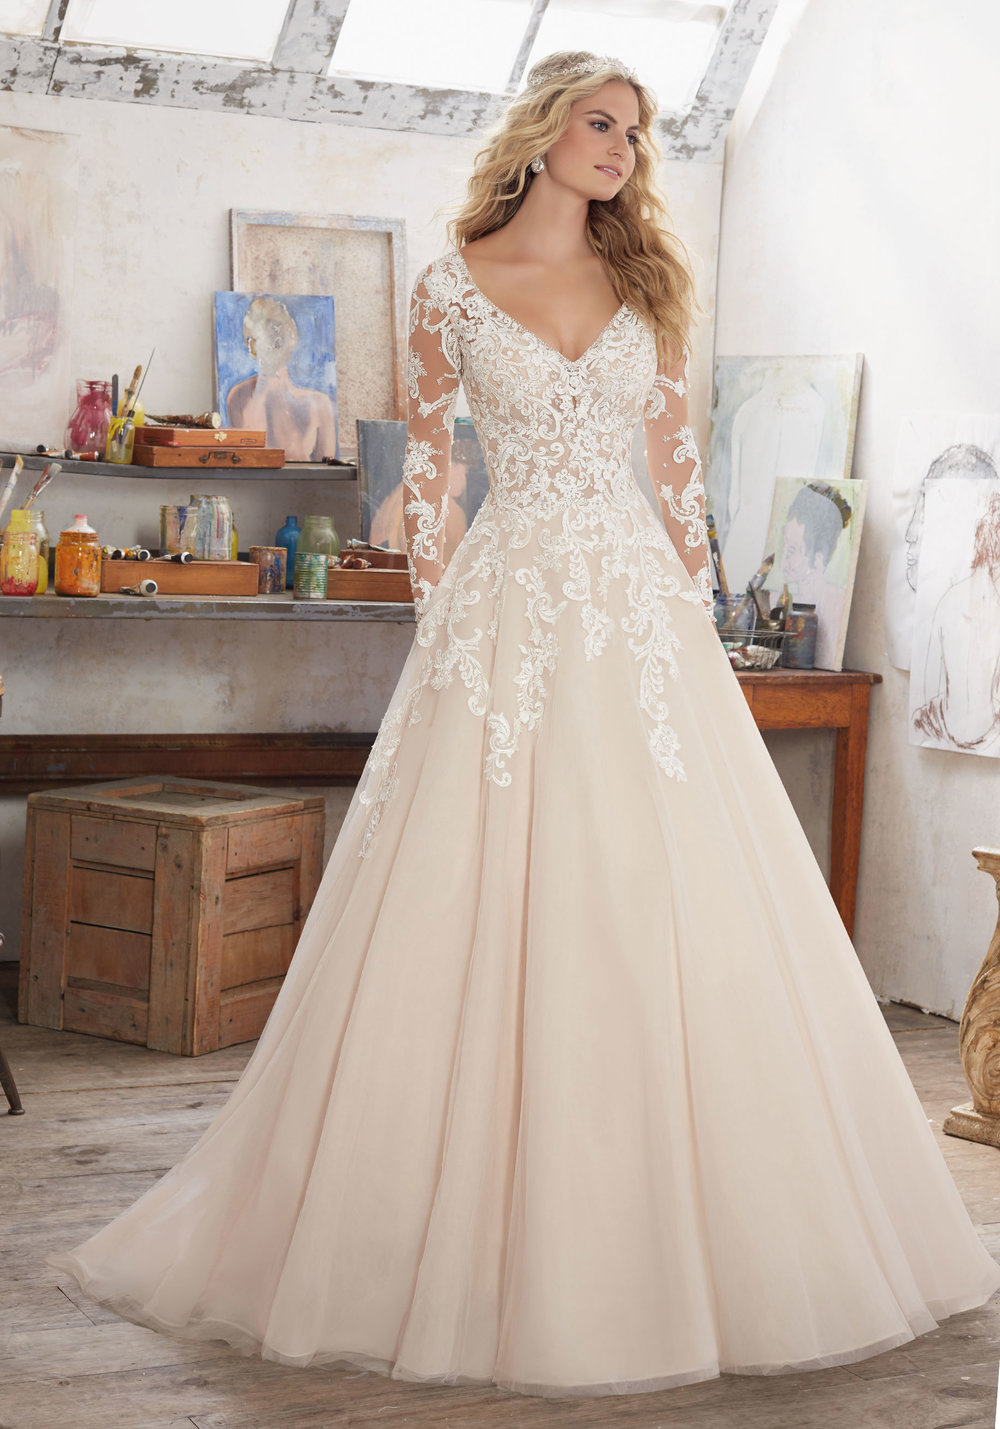 Mori Lee 8110 Ivory Caramel // Retail Price $1274 | Our Price $891